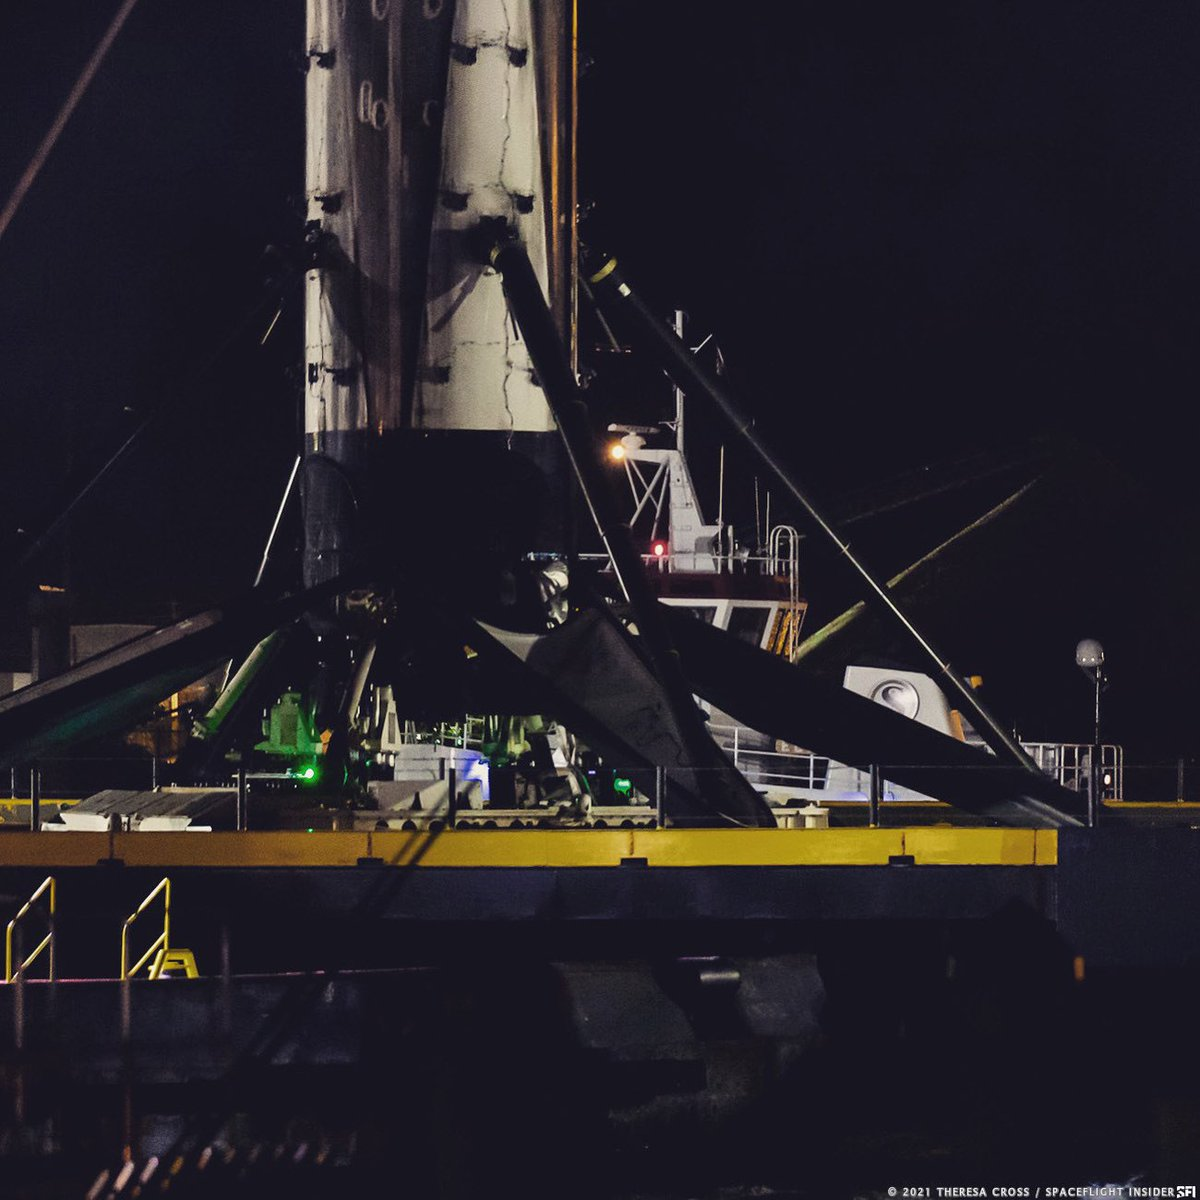 Another look at the January 11 arrival of #B1060.4 into @portcanaveral./tc #türksat5a #falcon9 #spacex #rocketbooster